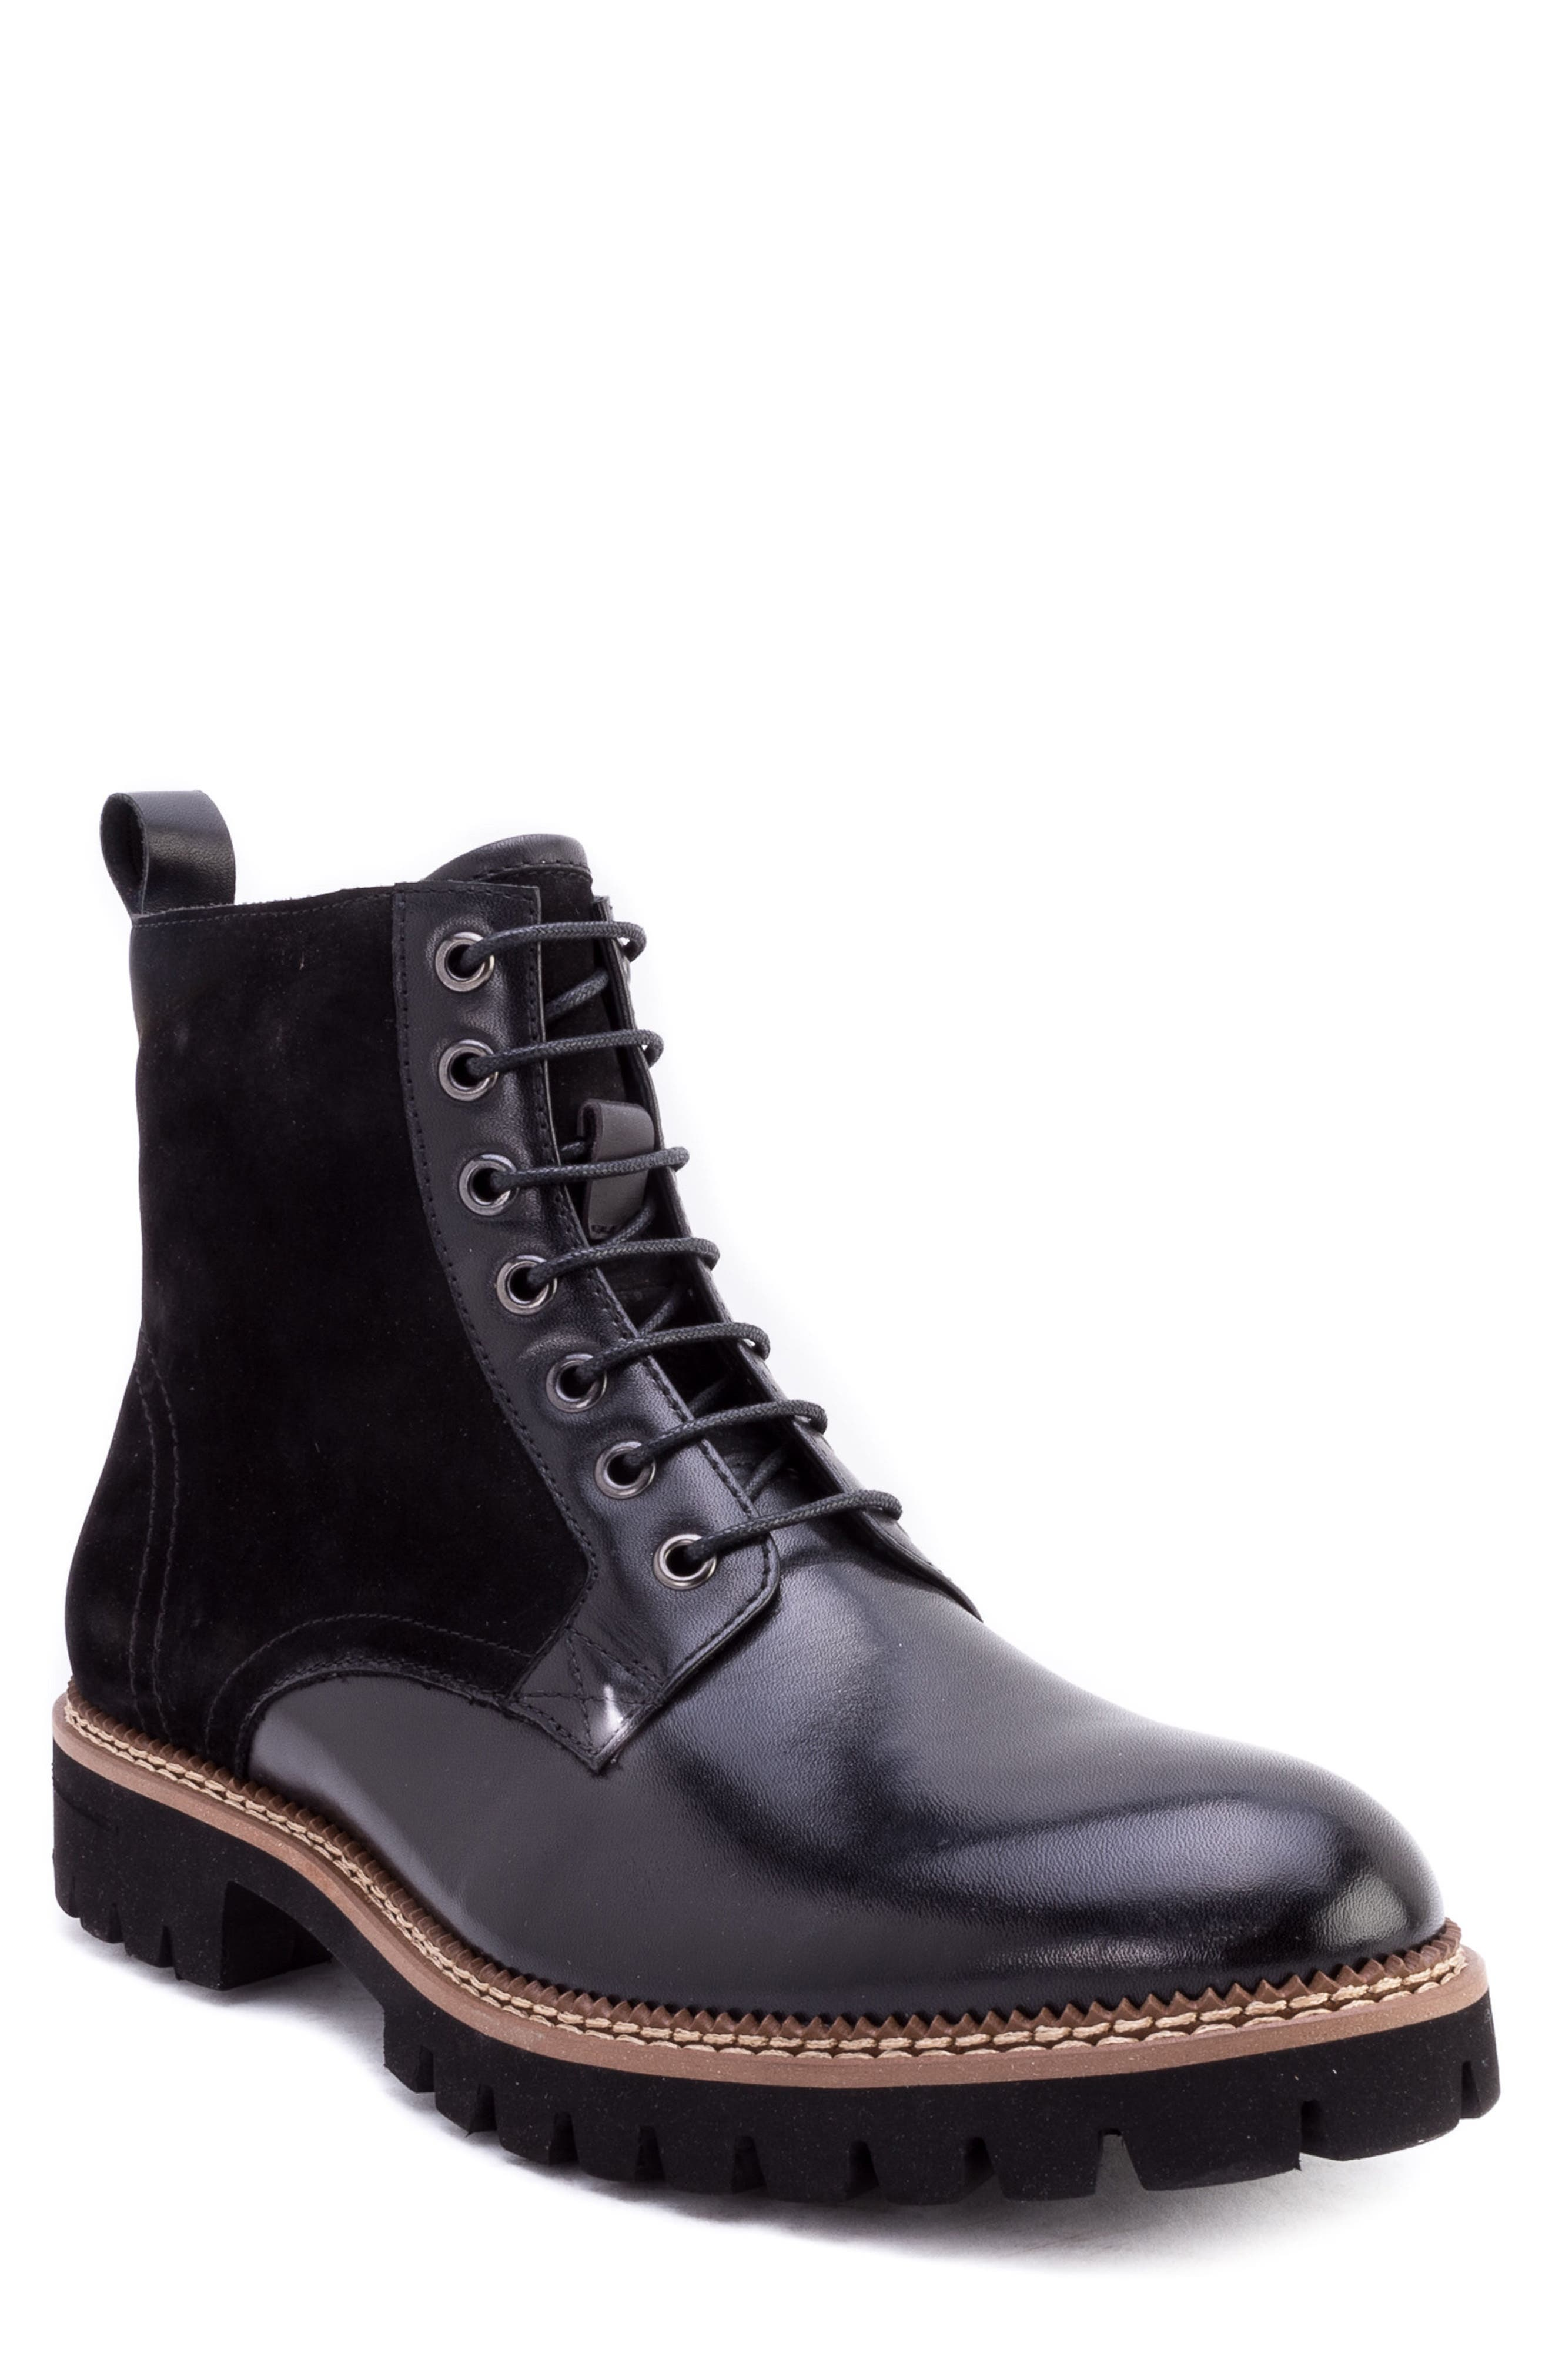 Millet Water Resistant Lugged Boot,                         Main,                         color, BLACK LEATHER